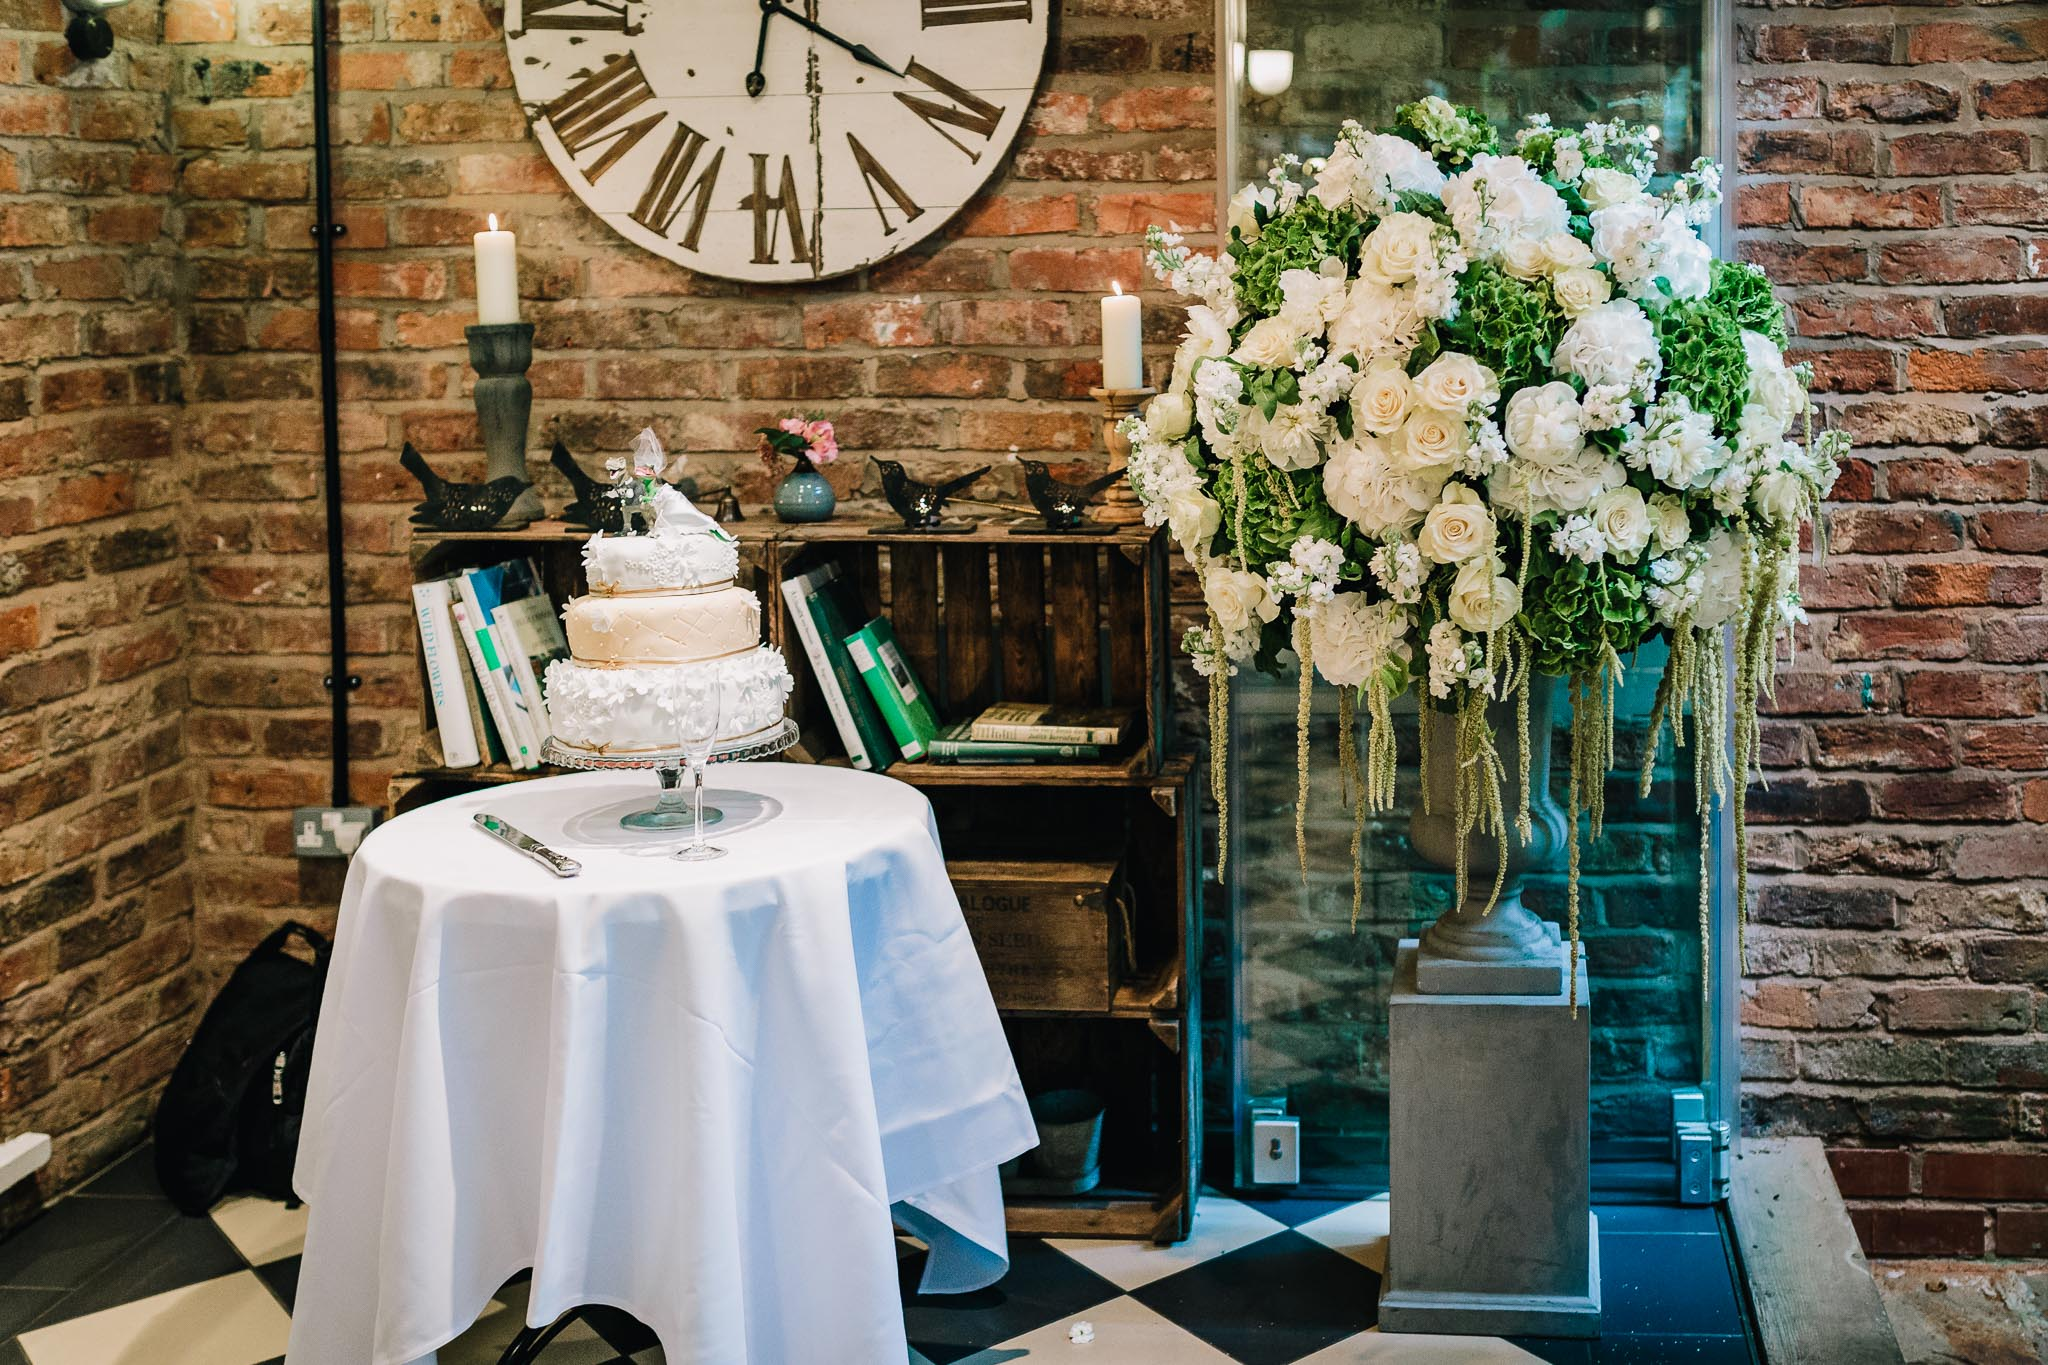 WEDDING CAKE AND FLOWERS THE FLOWER LOUNGE DIDSBURY